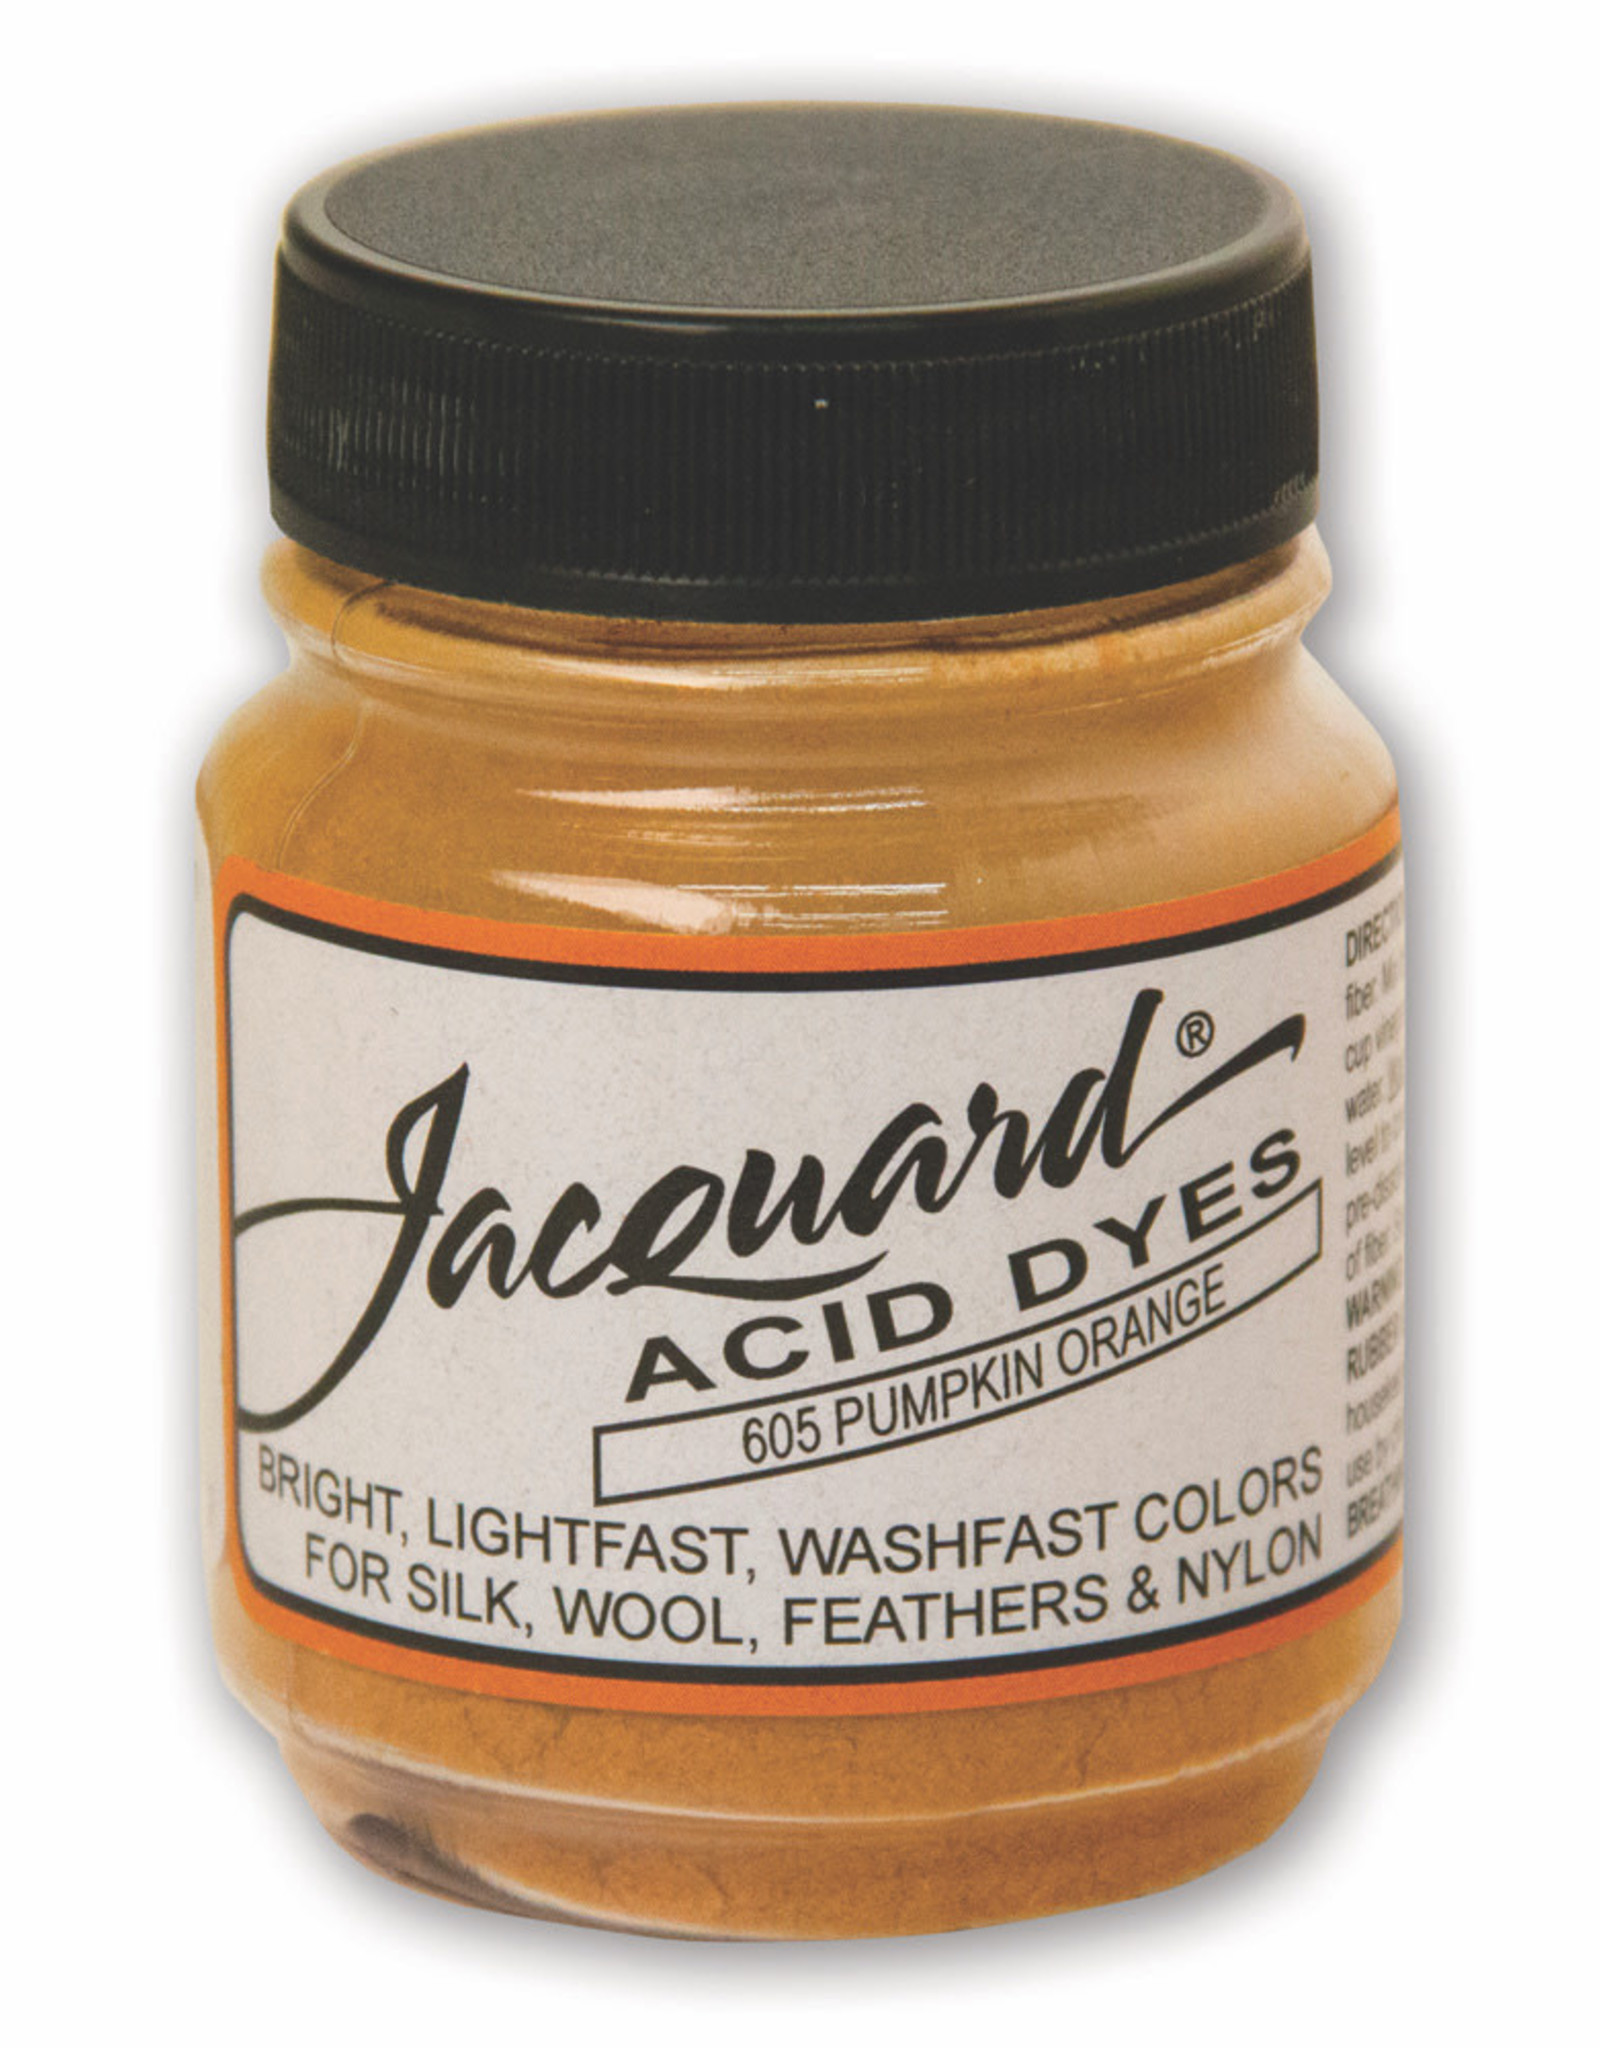 Jacquard Jacquard Acid Dye #605 Pumpkin Orange 1/2oz